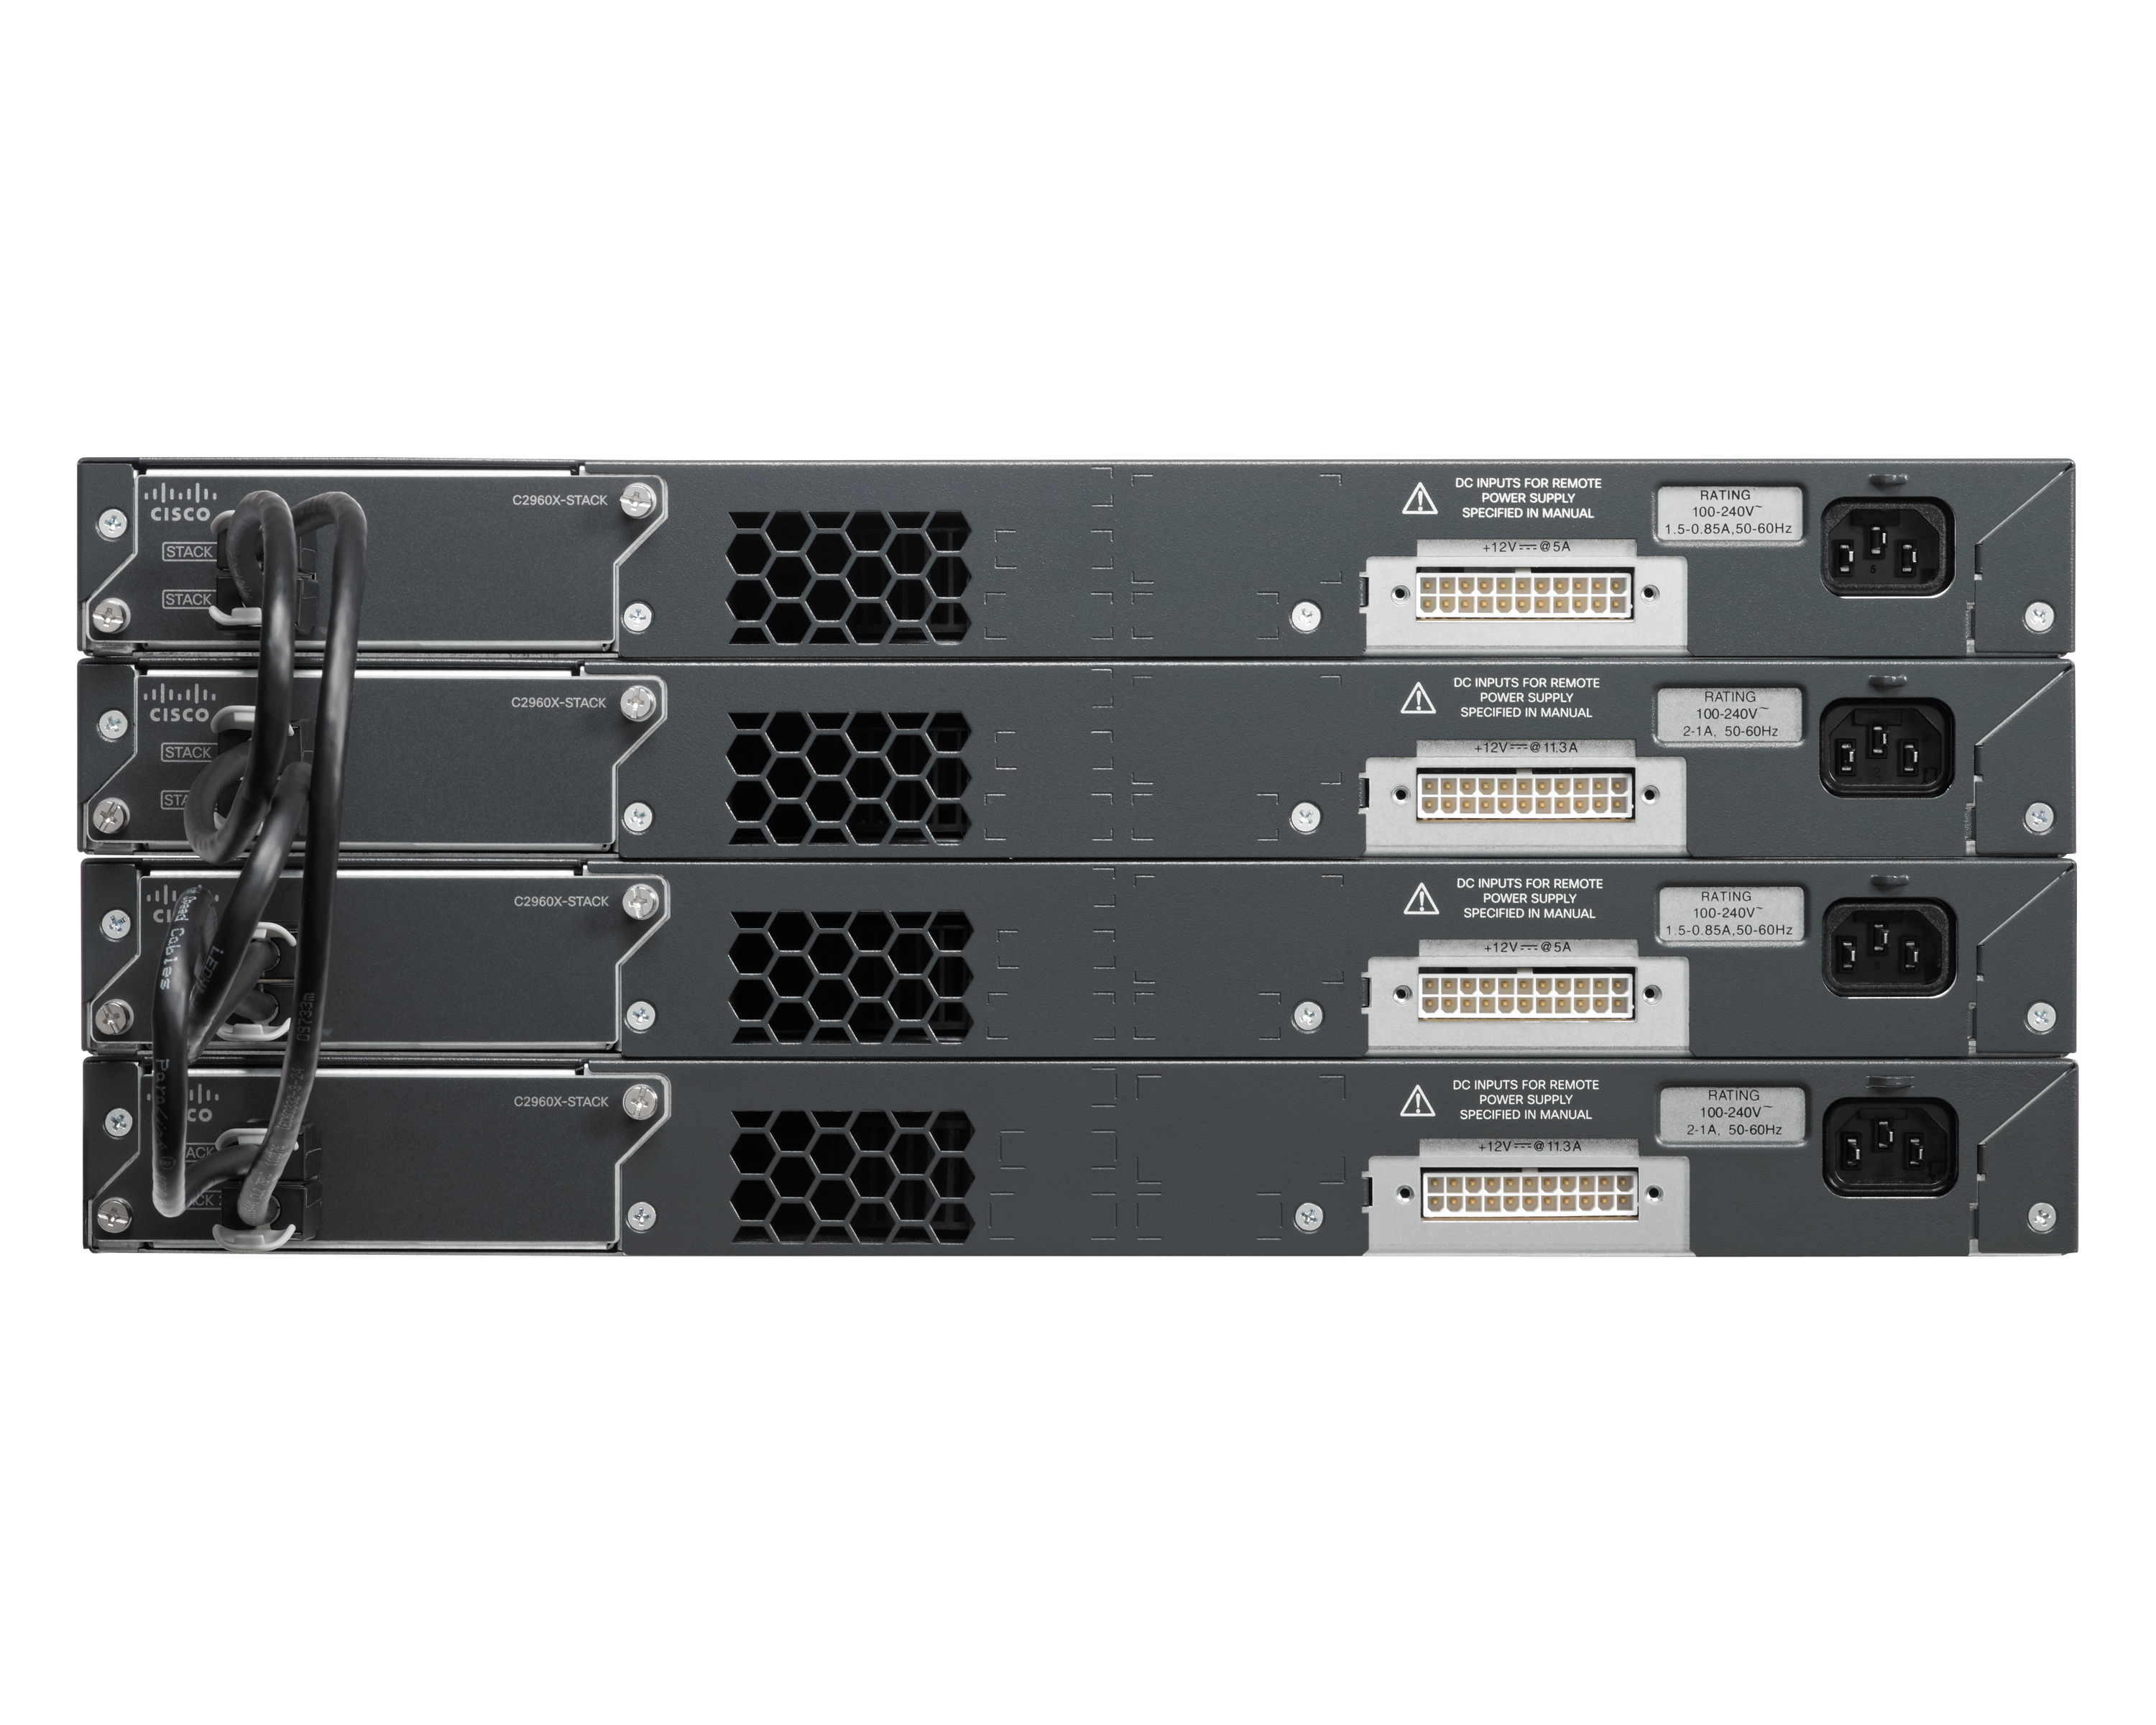 Cisco Catalyst 2960X-48TS-L Switch (WS-C2960X-48TS-L)